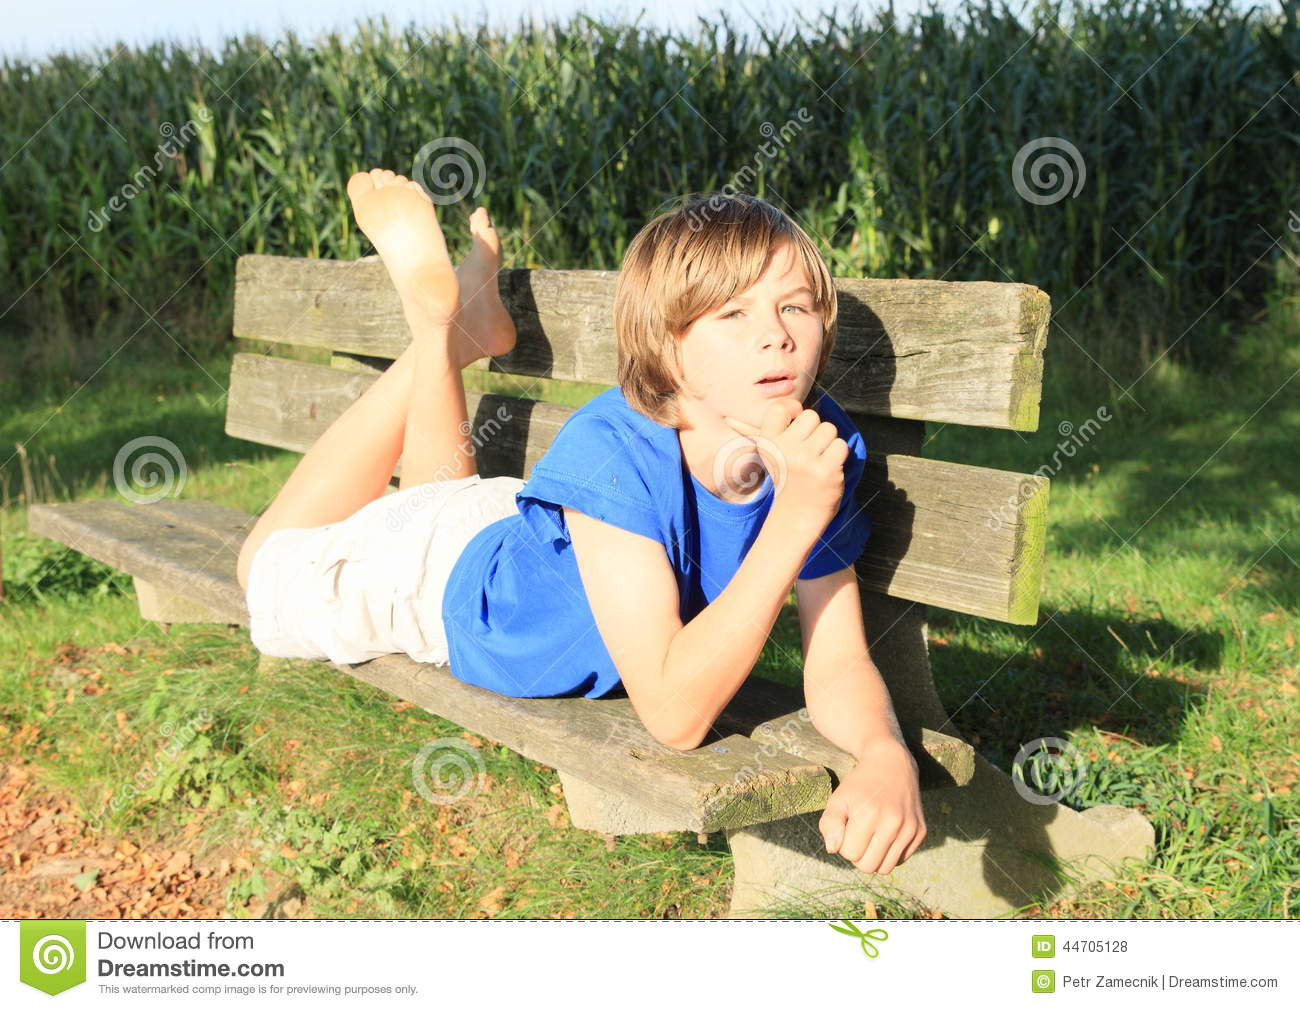 ... kid - barefoot boy lying on wooden bench with corn field behind